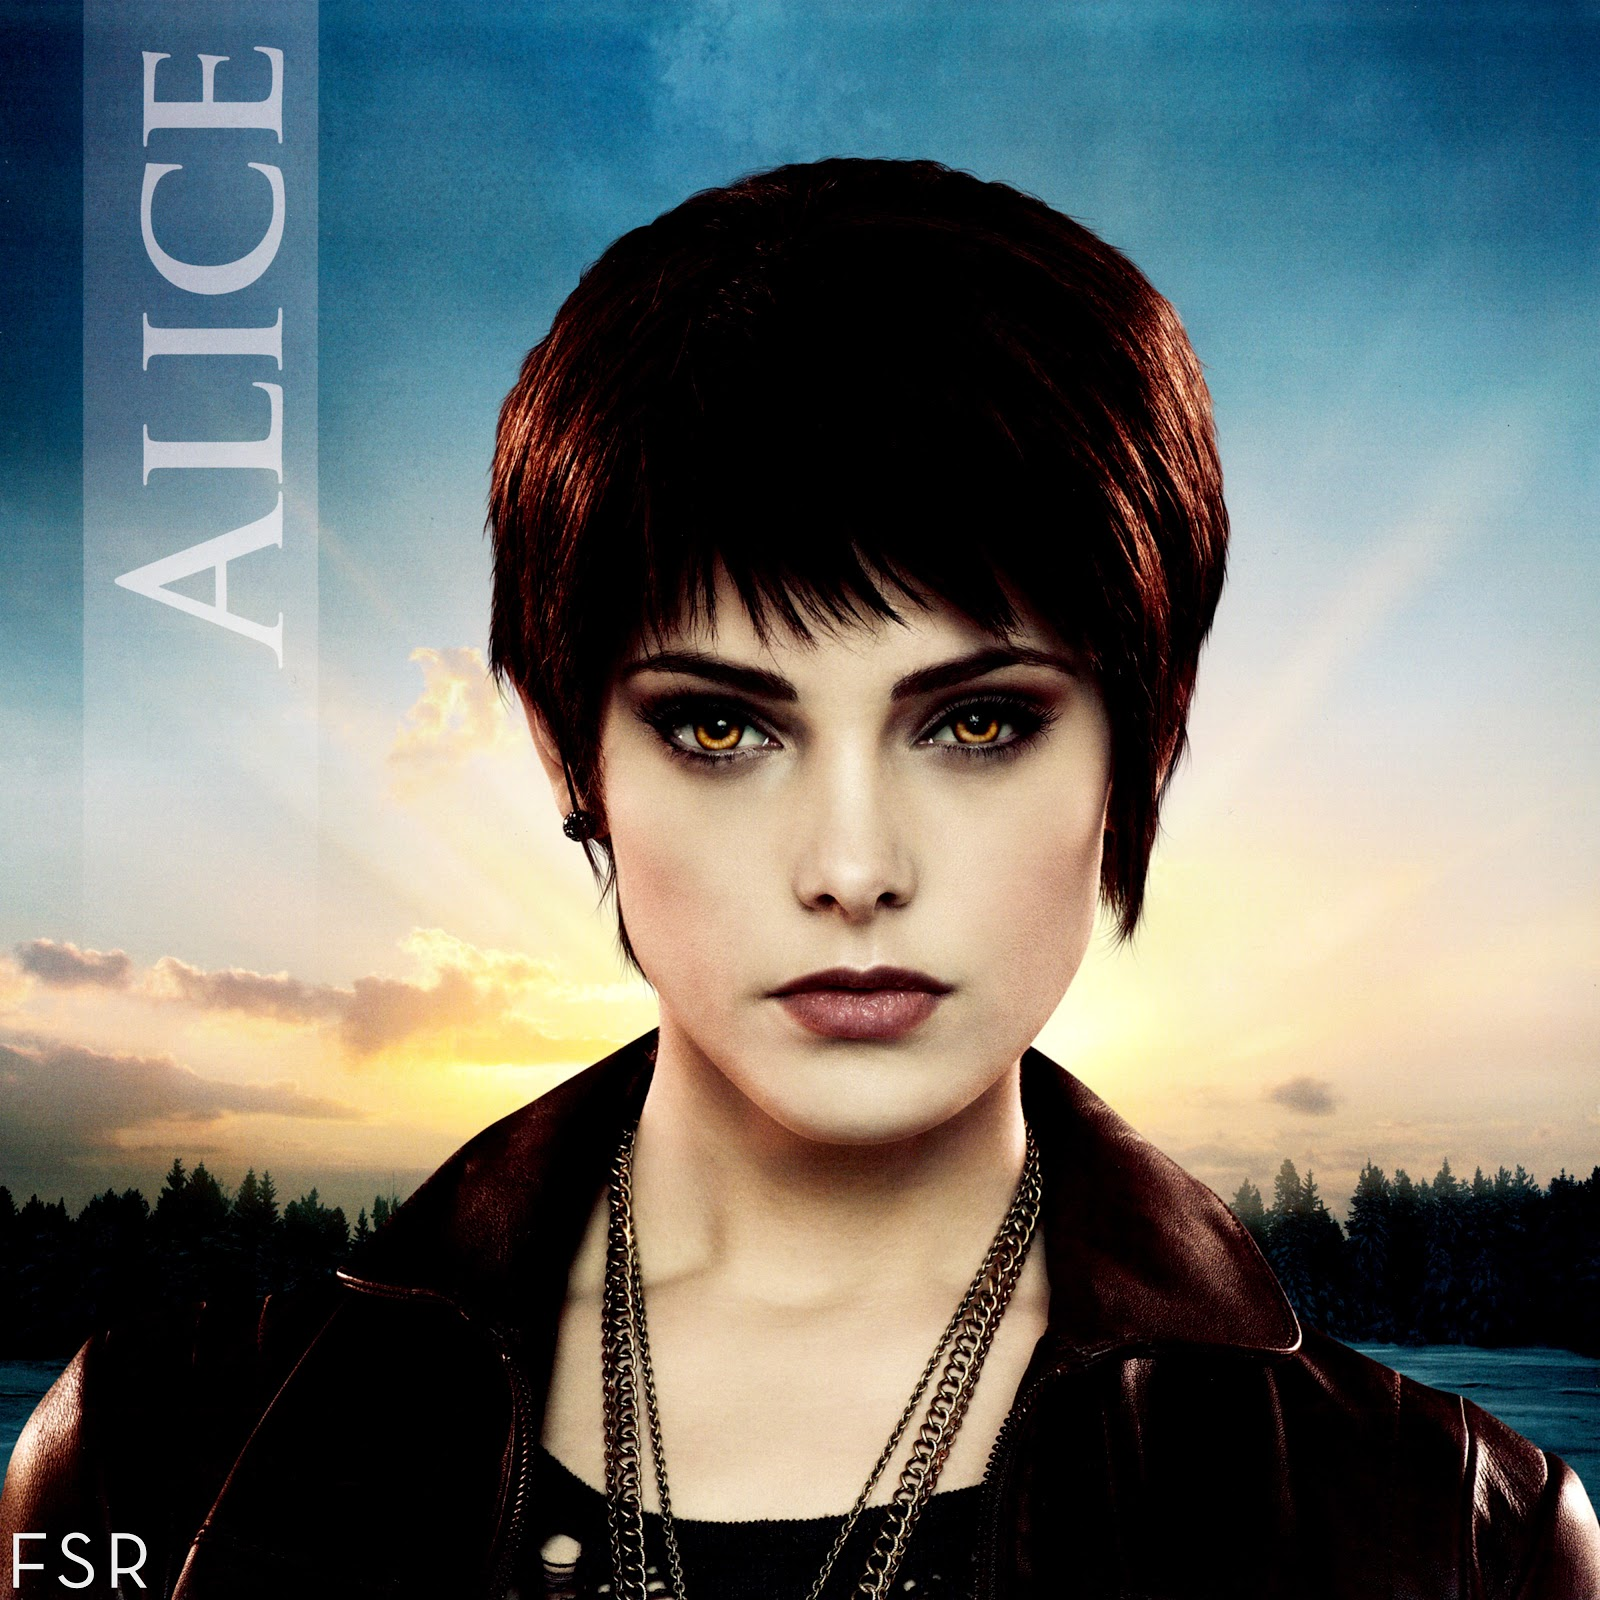 http://2.bp.blogspot.com/-NzrYaYp5cOE/UGWQPwk3v1I/AAAAAAAAXJc/UjRhjNXh32U/s1600/fashion_scans_remastered-breaking_dawn-part_2_calendar-2013-scanned_by_vampirehorde-hq-3.jpg